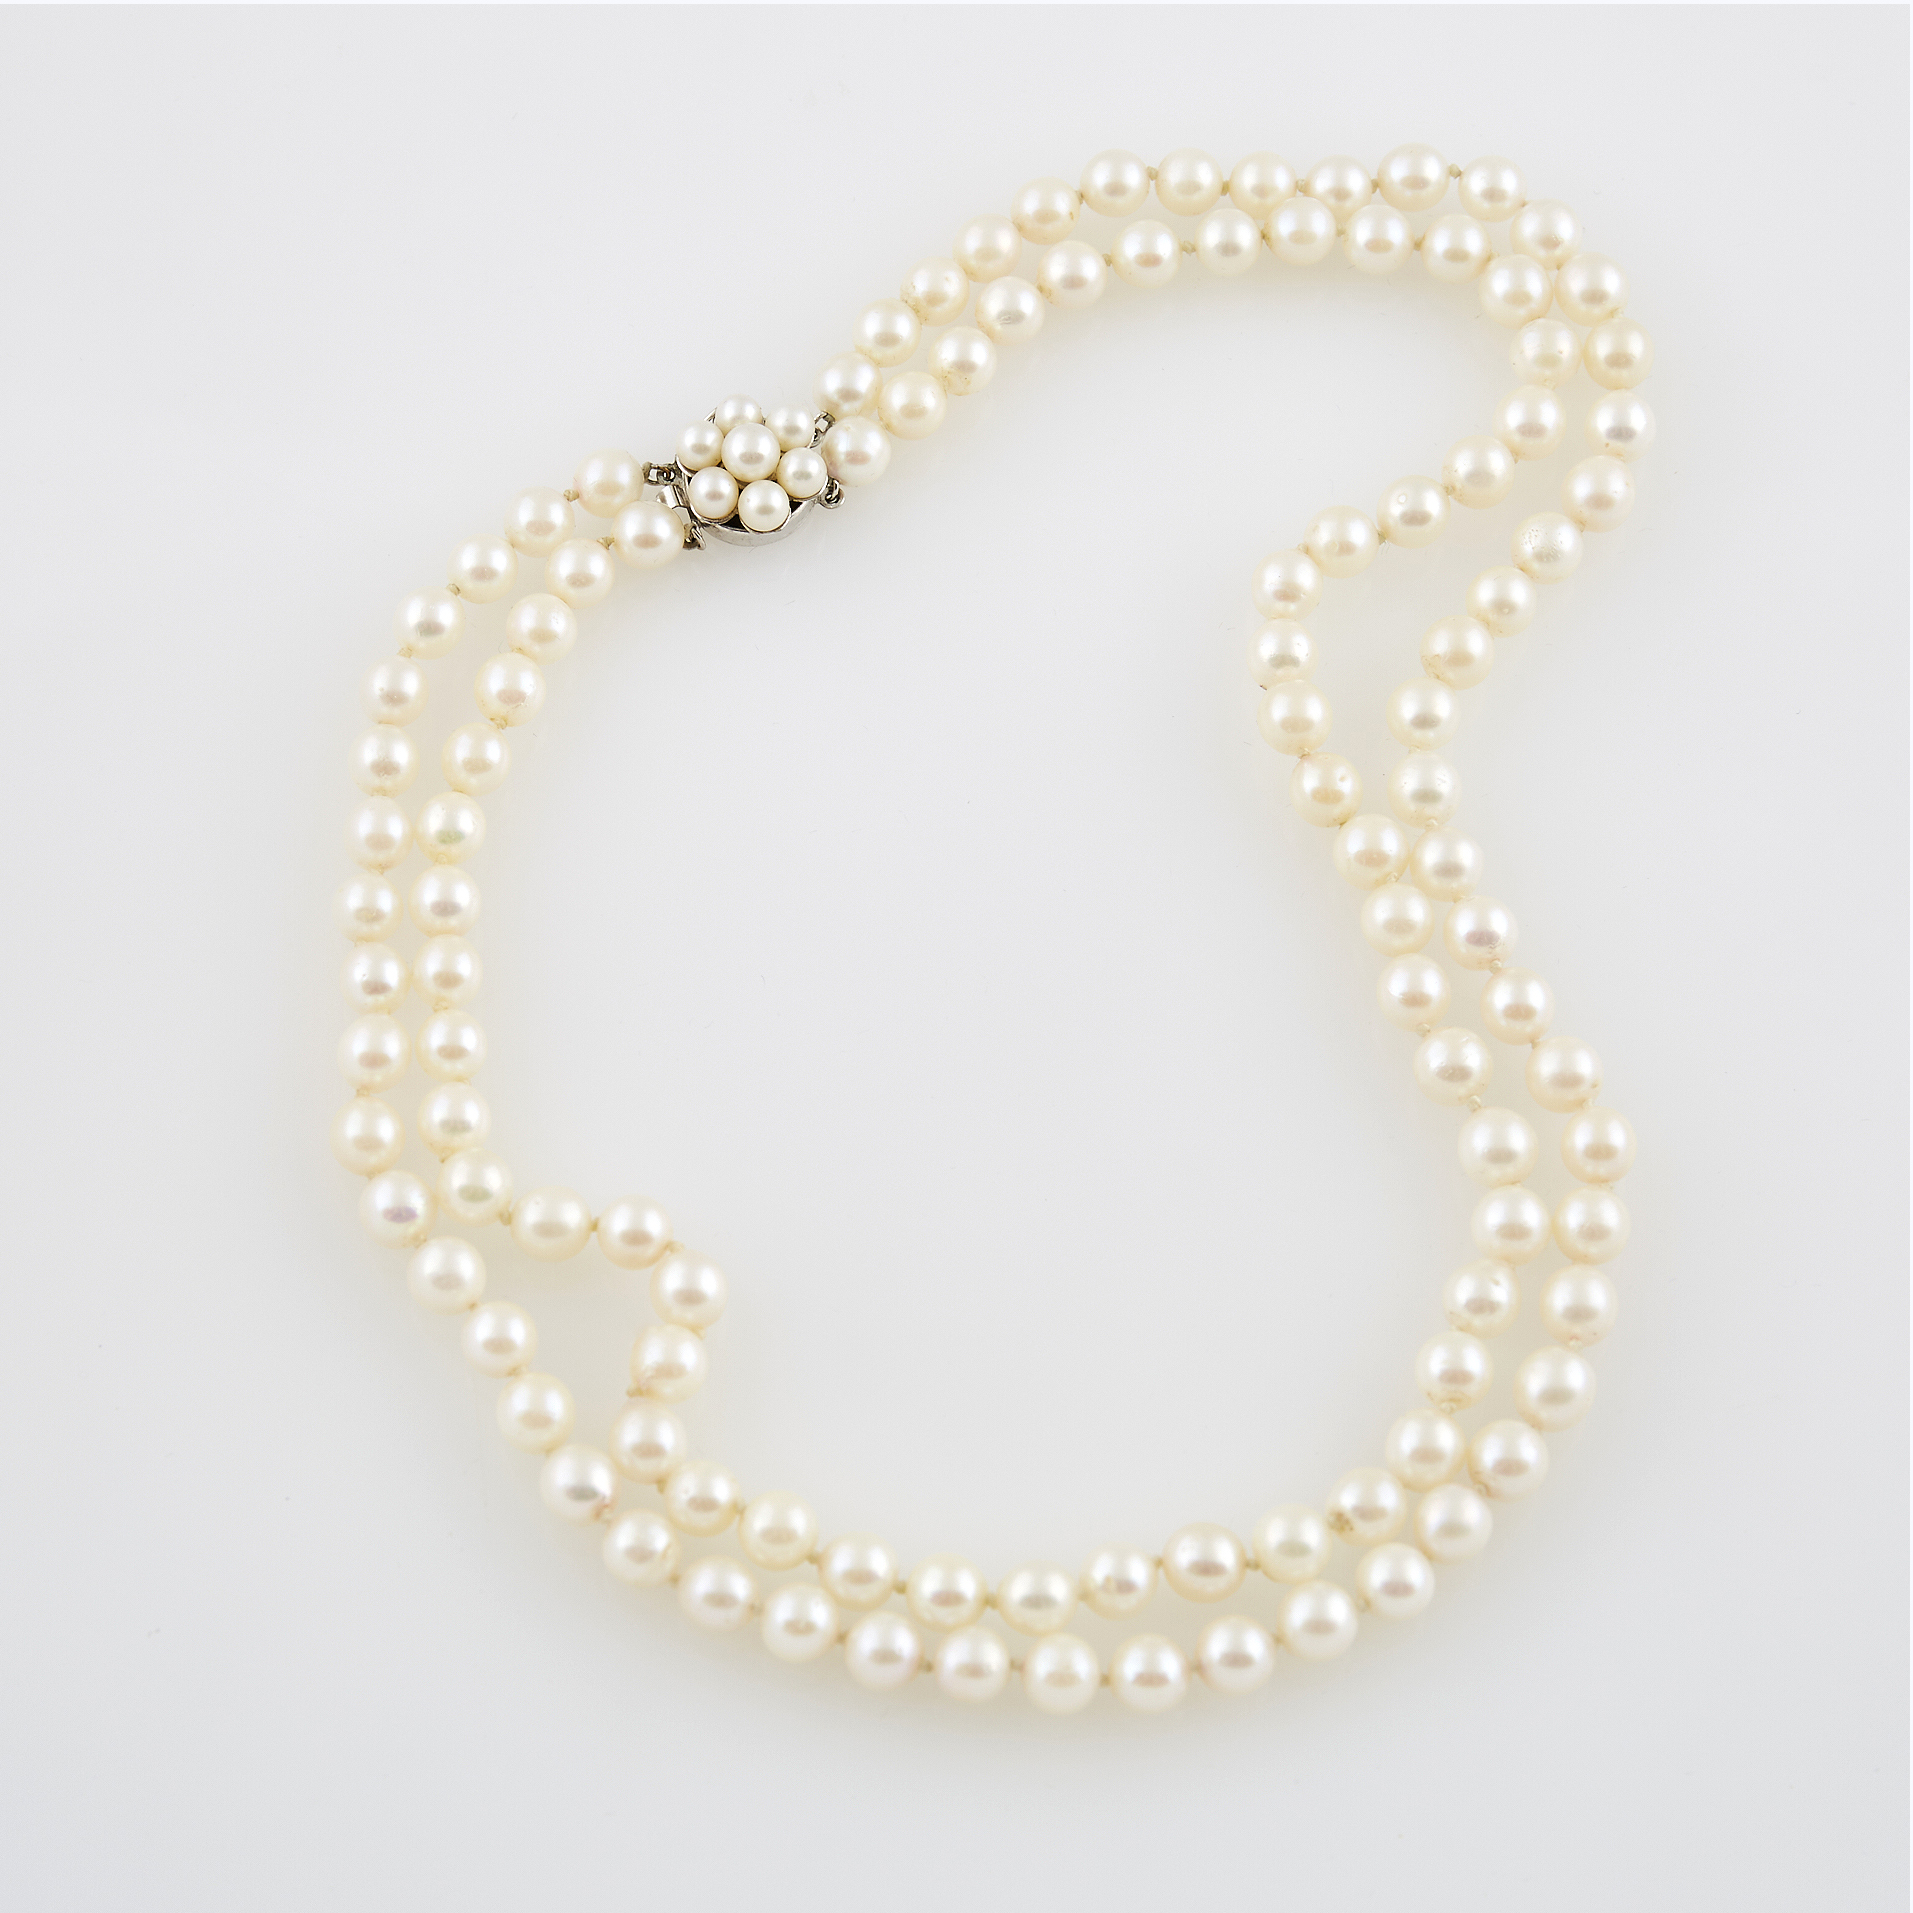 Lot image - Bead Necklace with gold and bead clasp attached, 14K